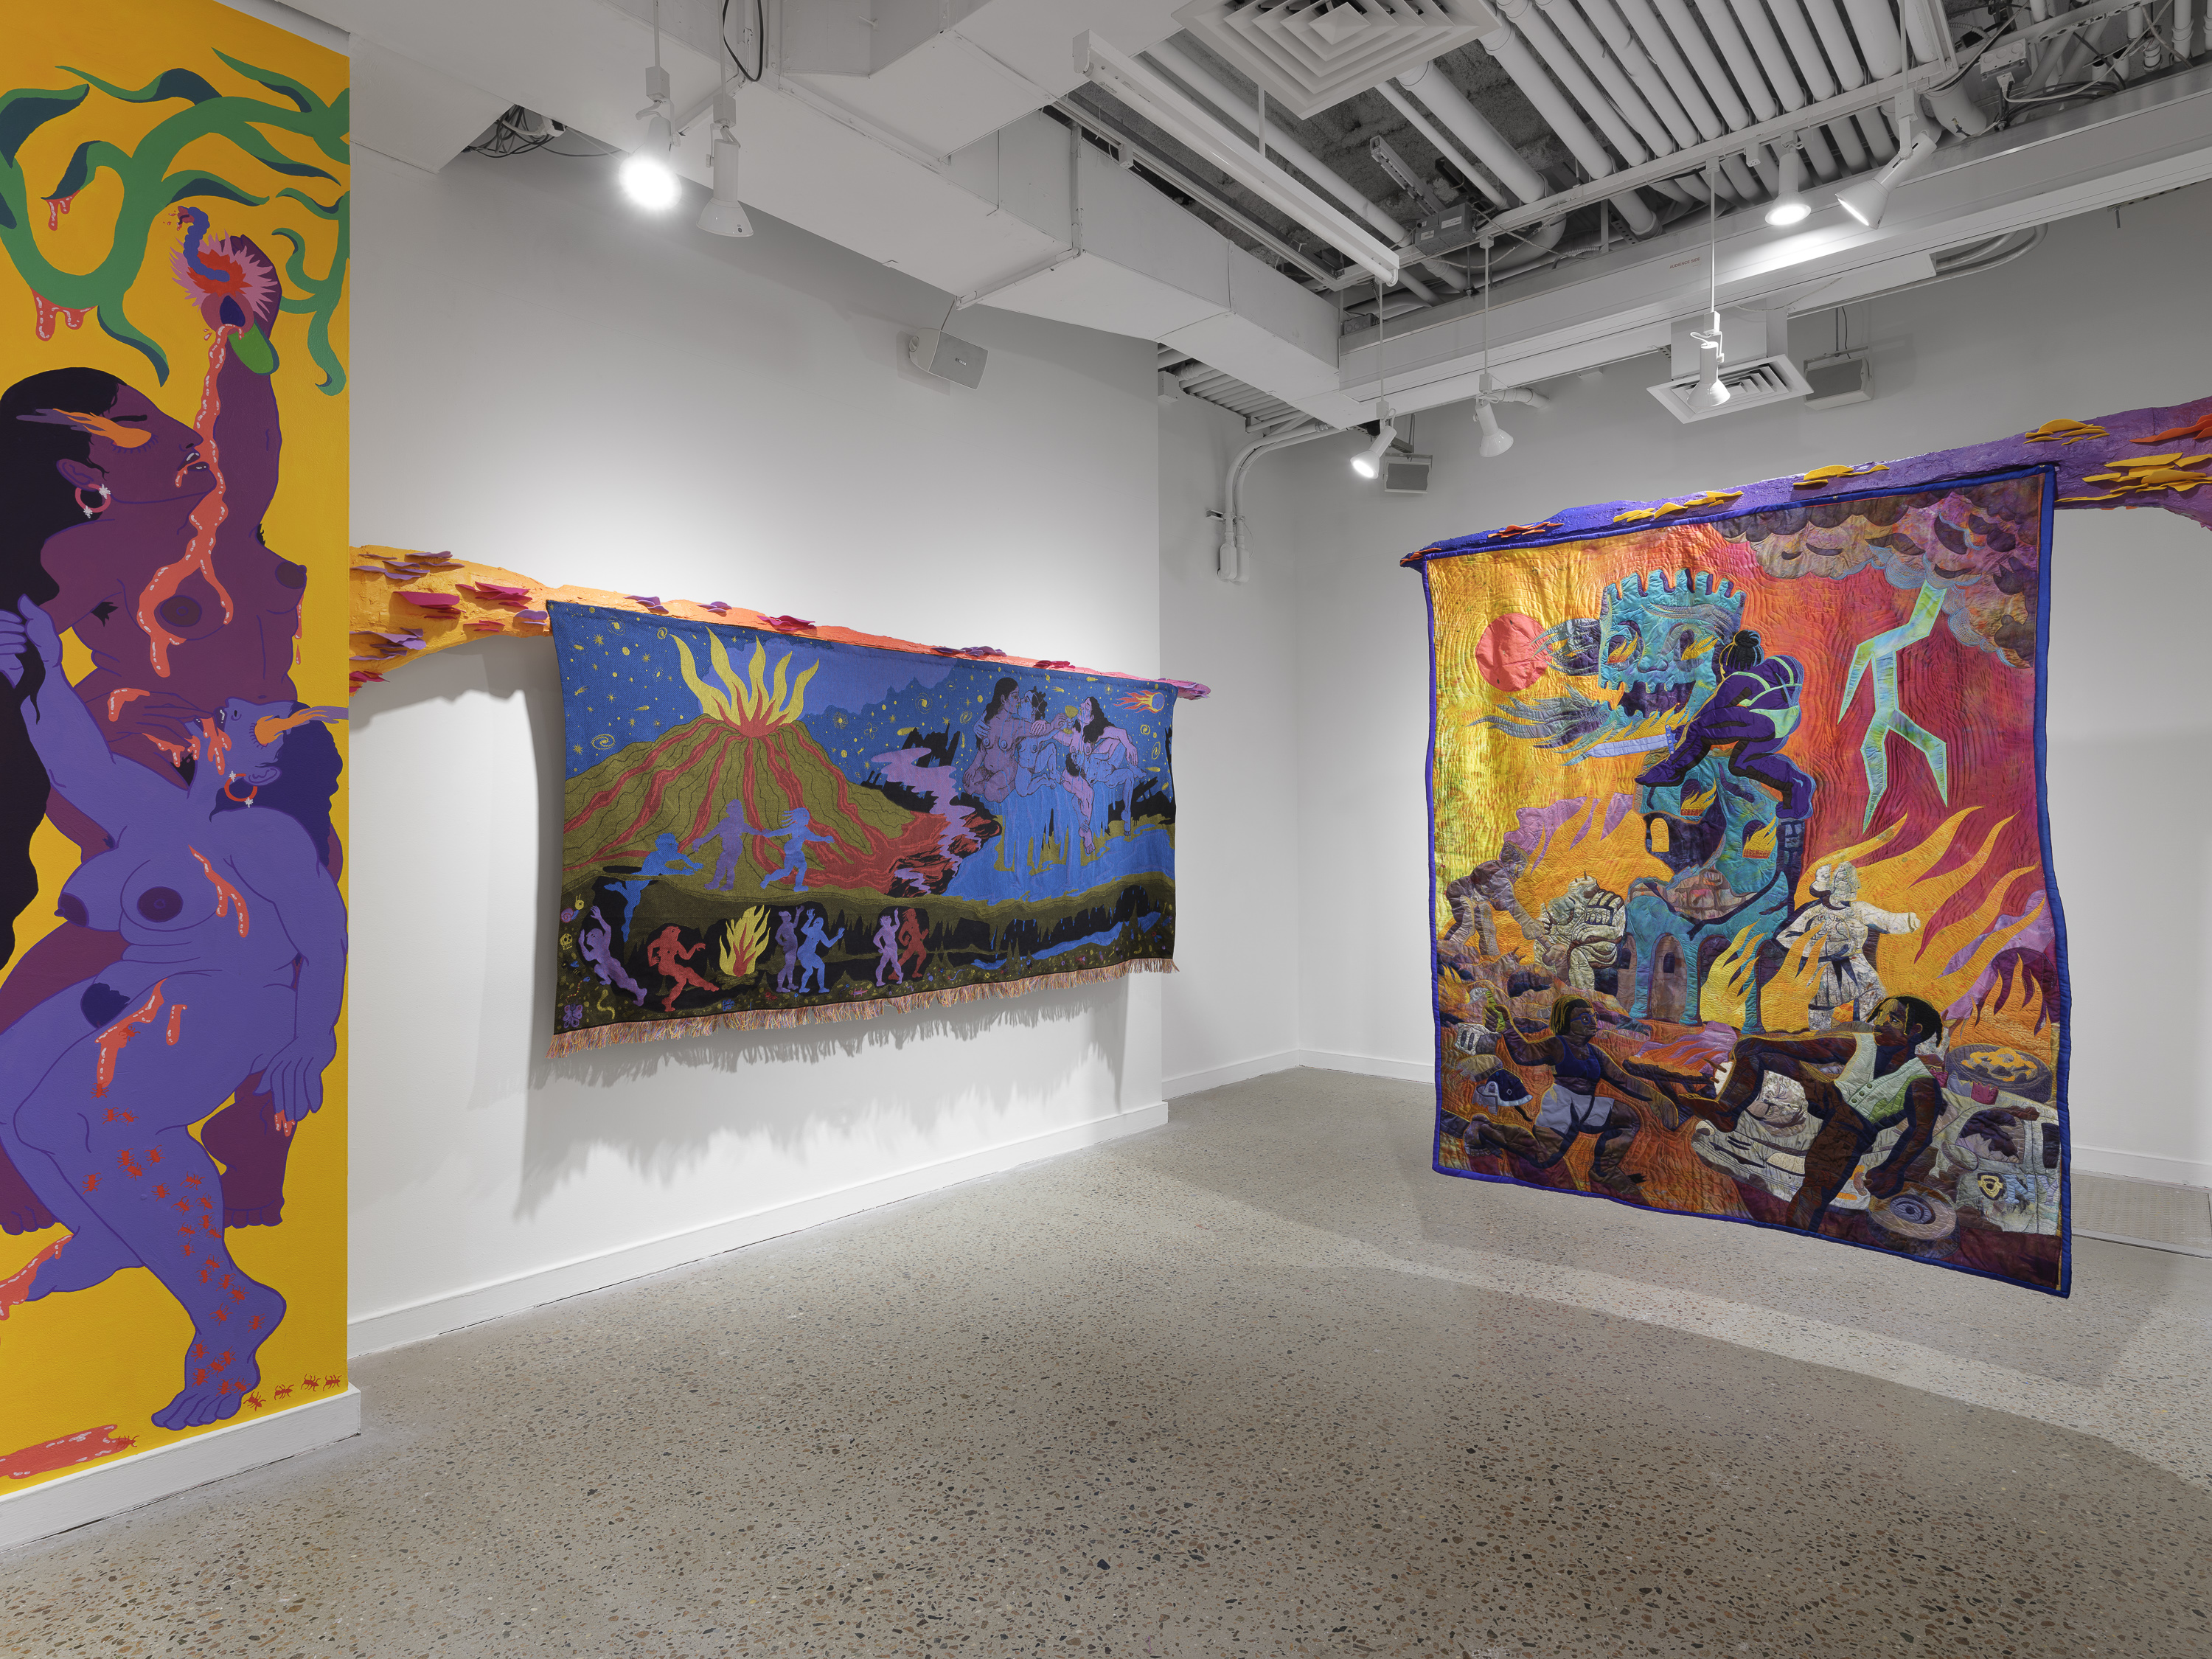 An art gallery room with three colorful and bright pieces of art hanging on the wall.